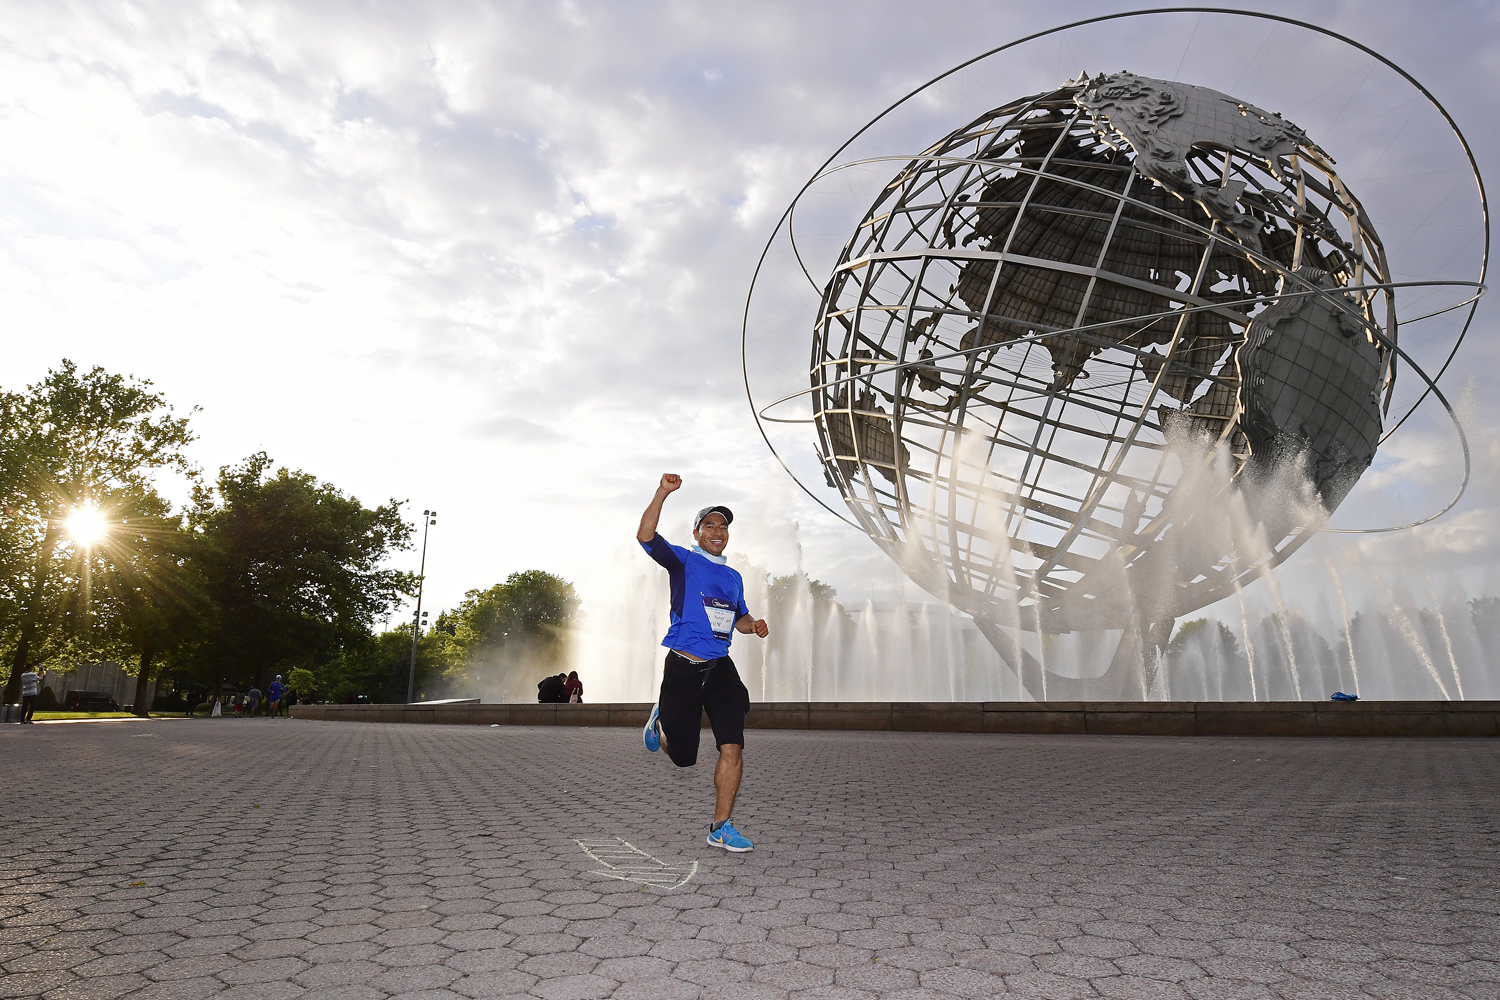 A runner in front of the globe at Flushing Meadows Corona Park in Queens